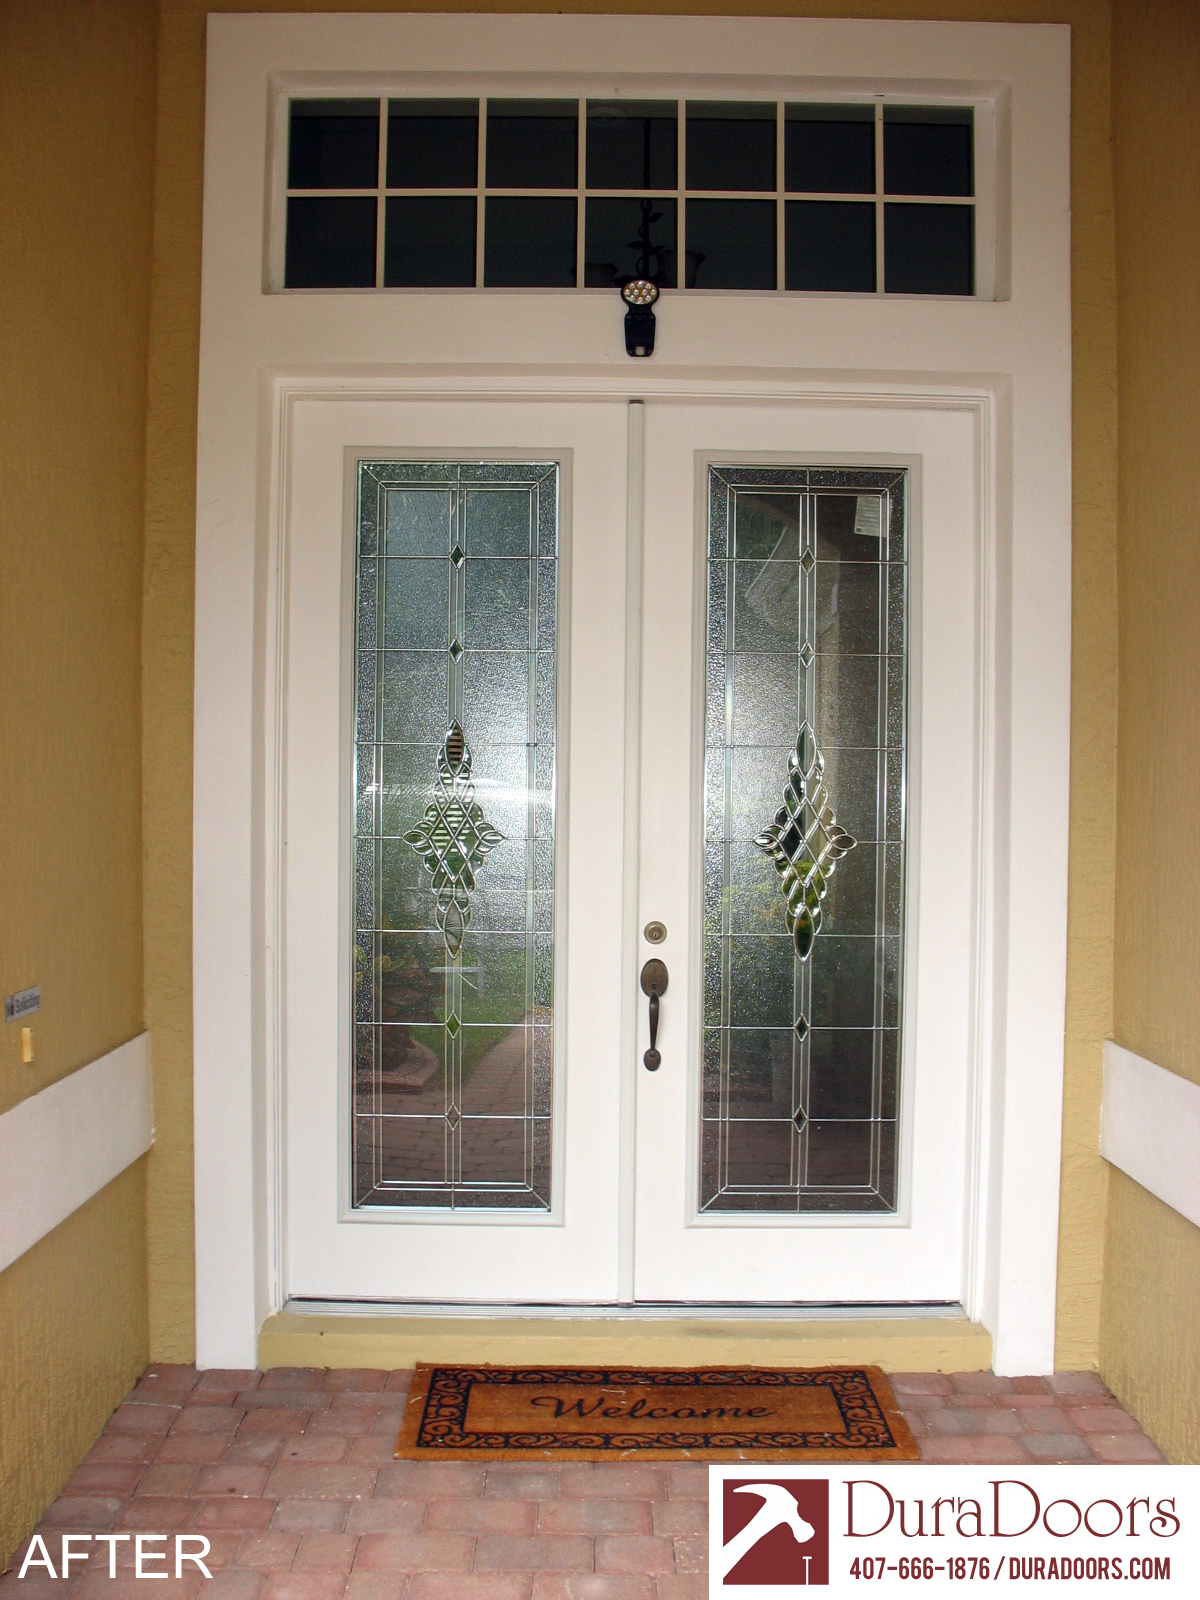 Decorative Glazing In Doors : Odl grace decorative glass duradoors